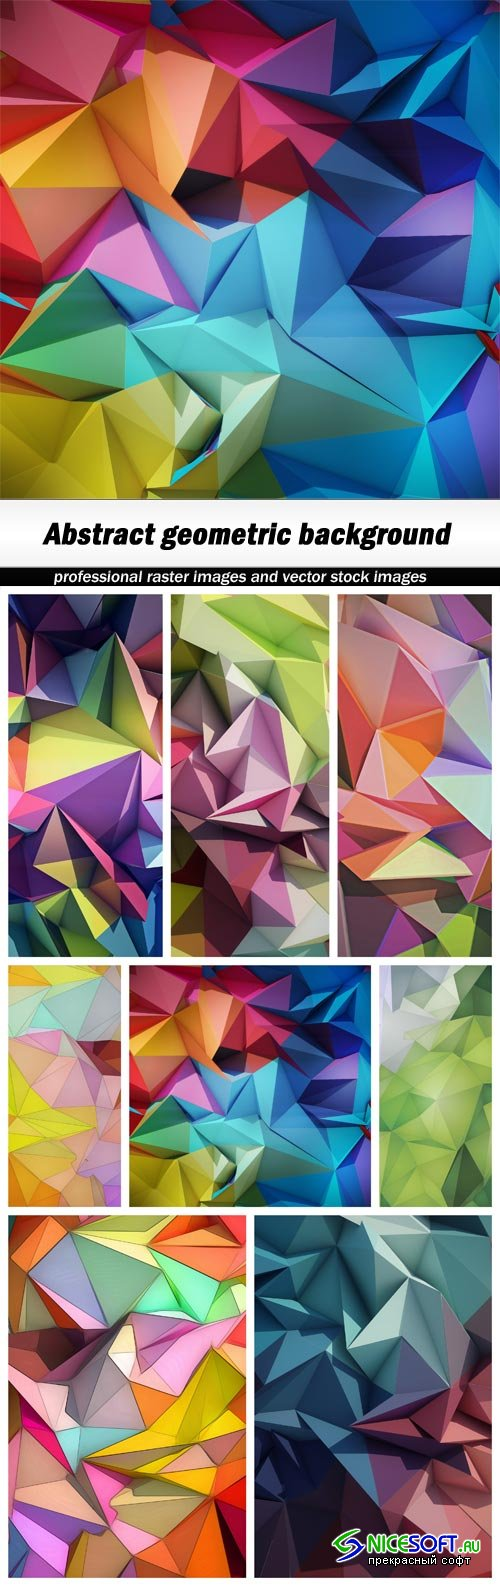 Abstract geometric background - 8 UHQ JPEG